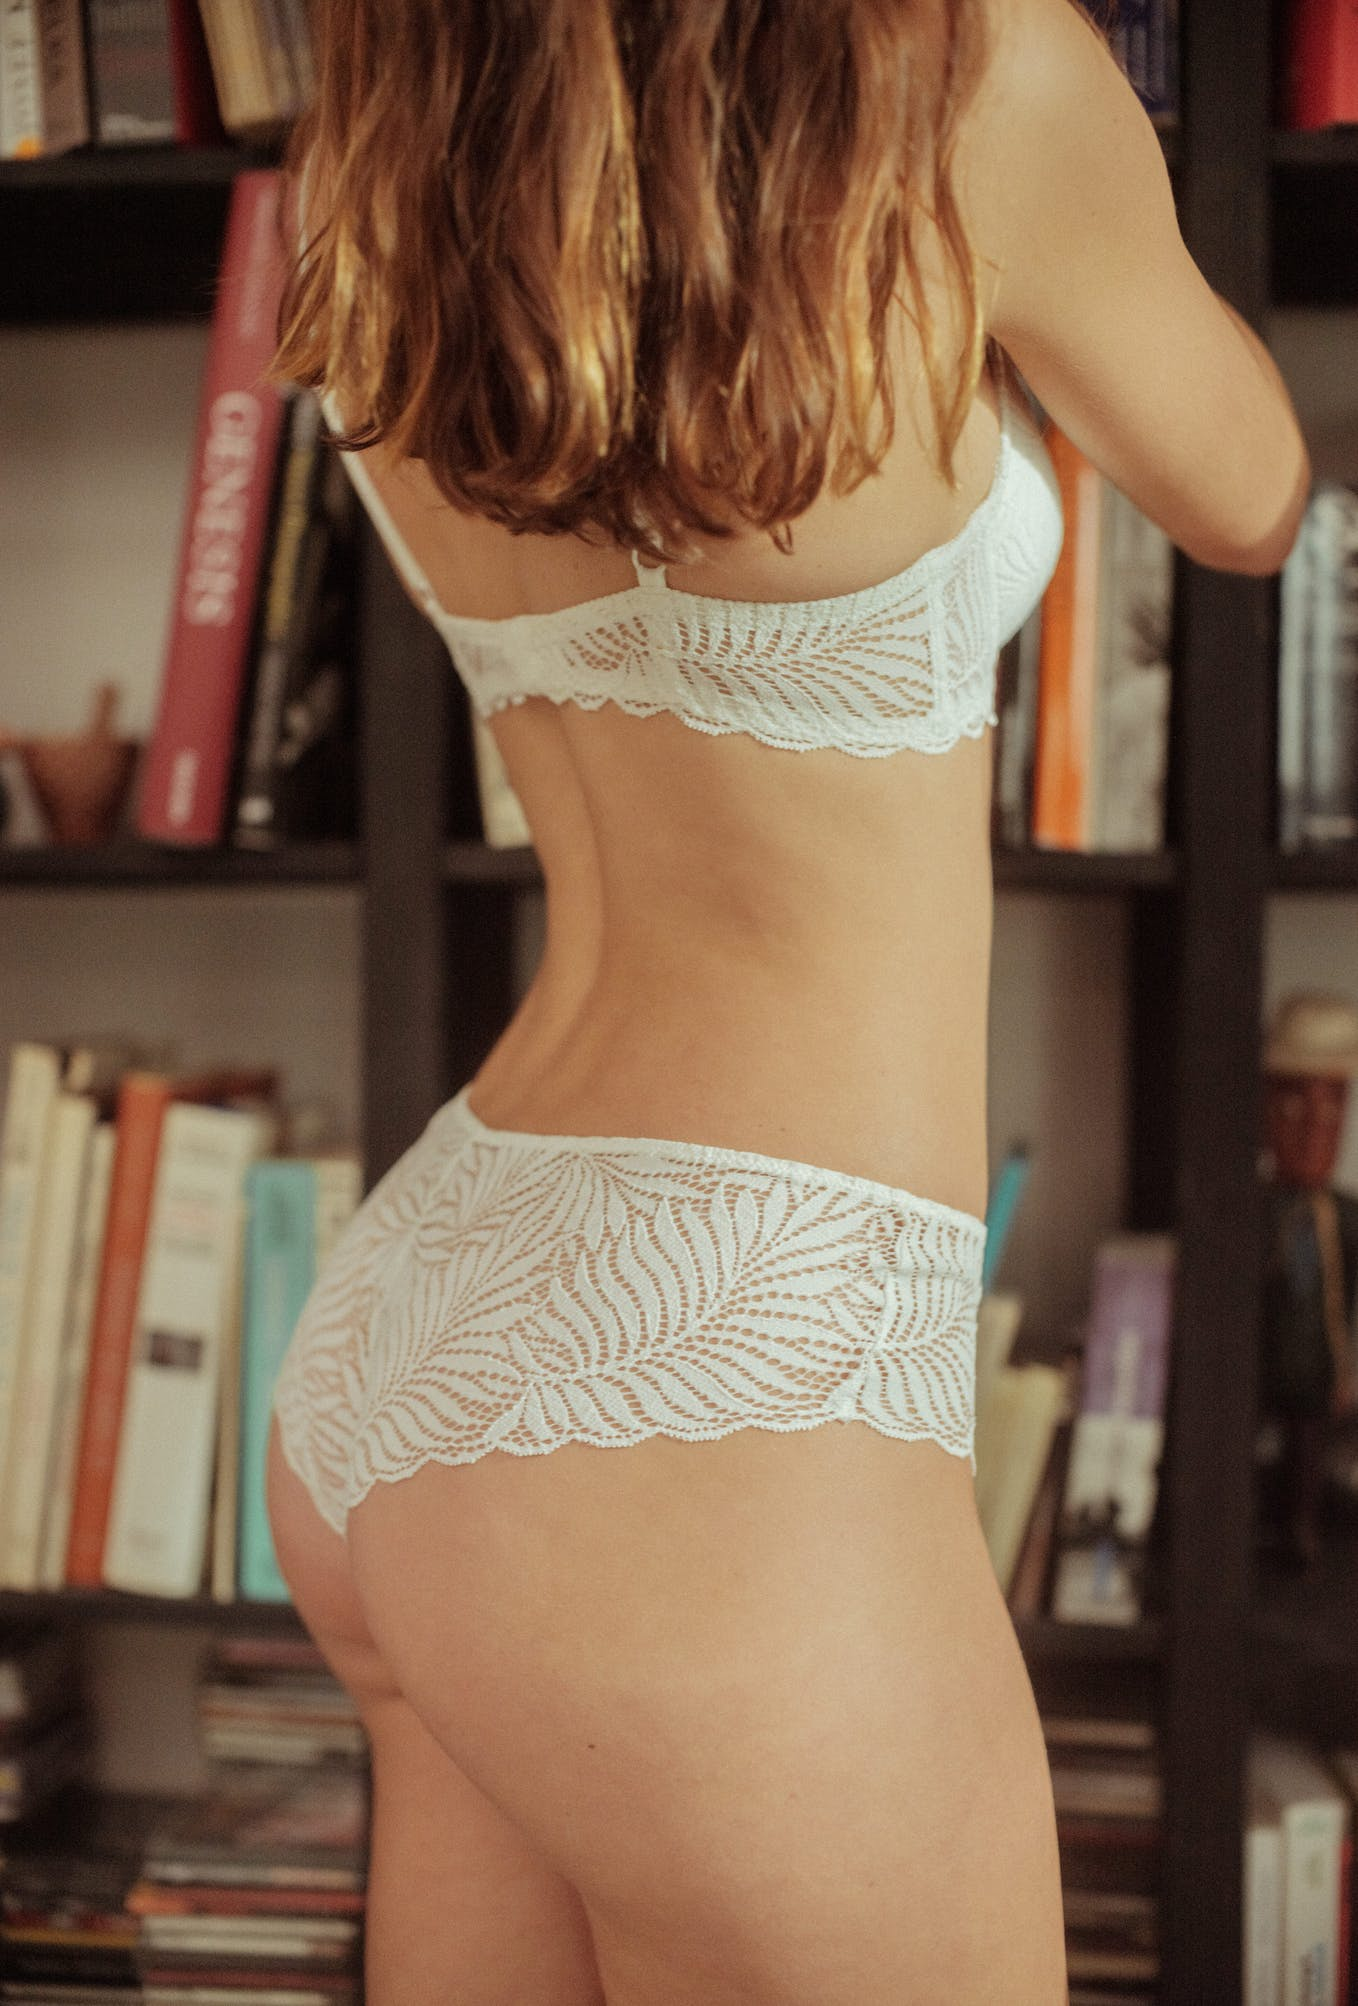 Back view of L'air du temps Lingerie set in ivory